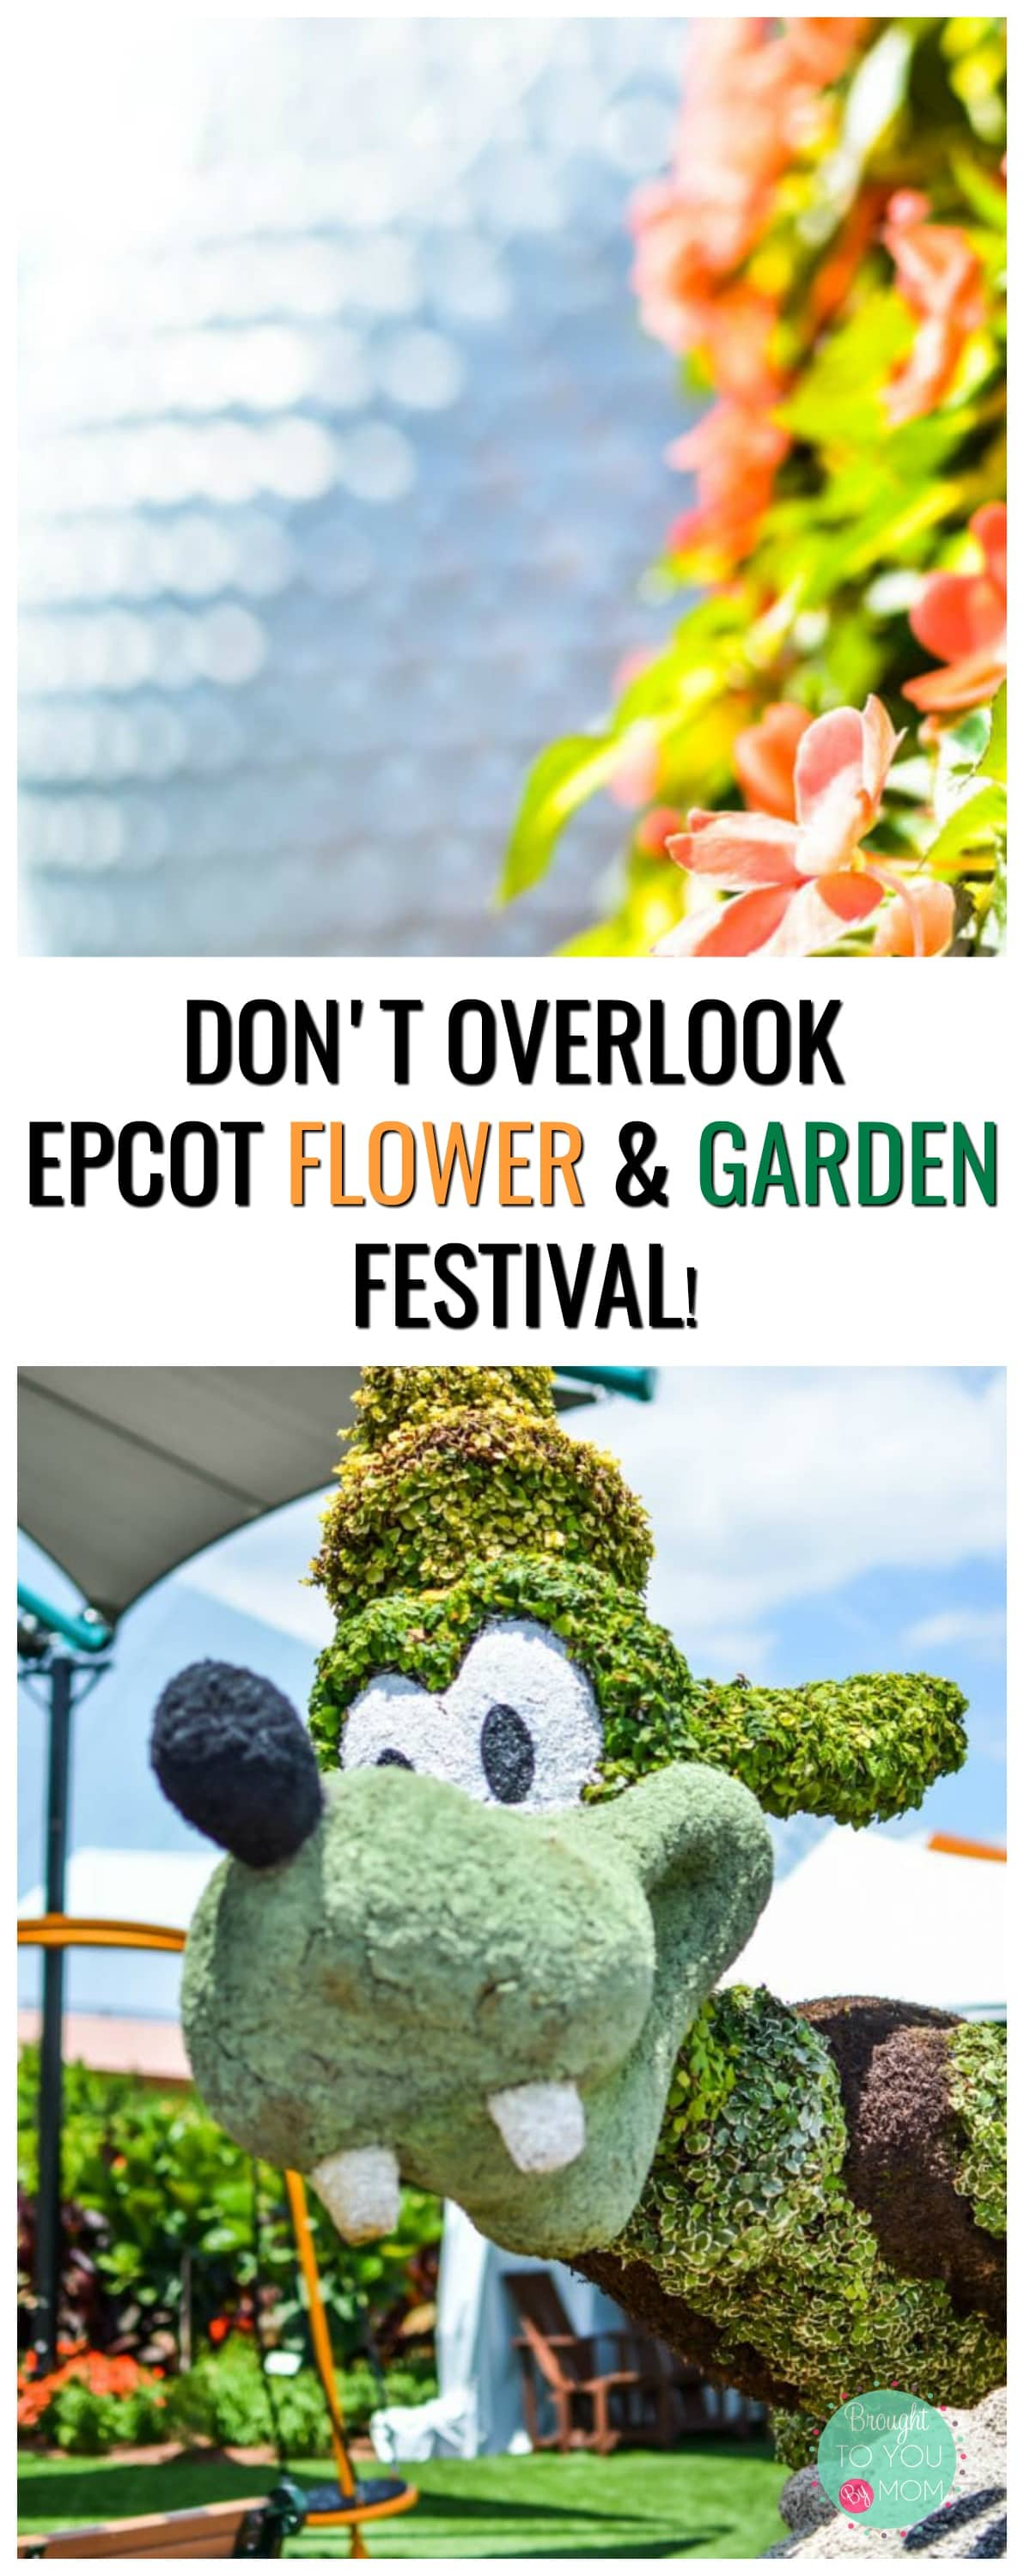 There are plenty of reasons why you shouldn't overlook Epcot Flower and Garden Festival. This flower and garden festival is one in a million. The Disney World Flower and Garden Festival is filled with food, fun, flowers, and so much more! The Flower and Garden Festival 2018 starts now! #freshepcot #epcot #disney #travel